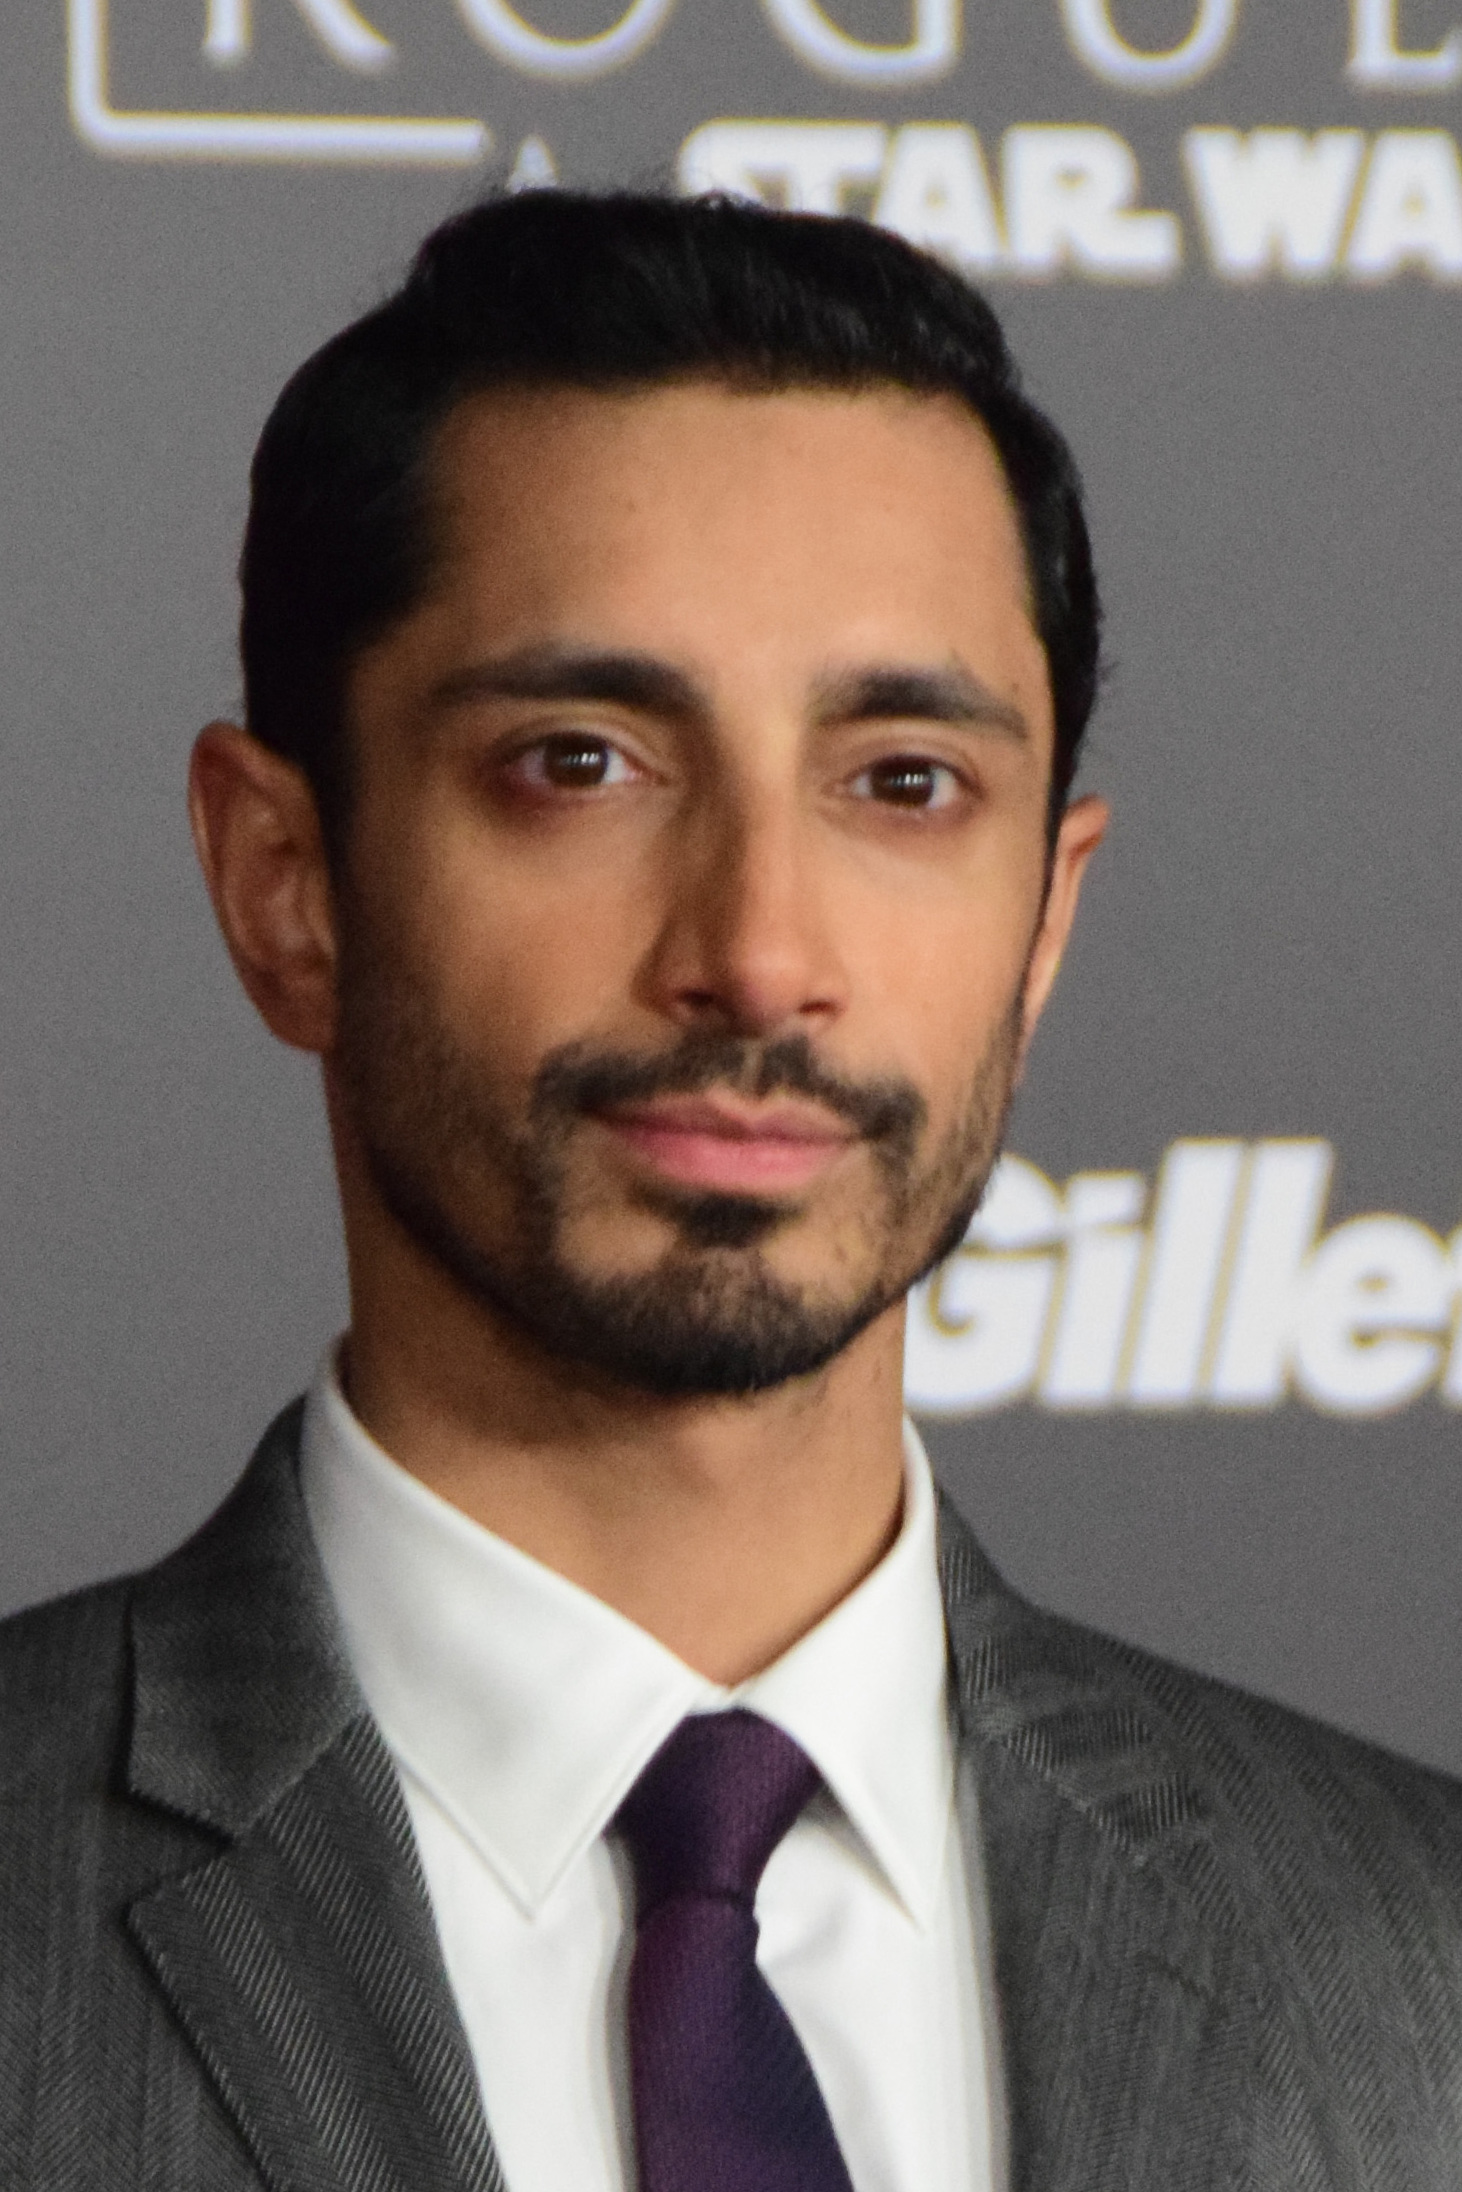 Riz Ahmed - Wikipedia